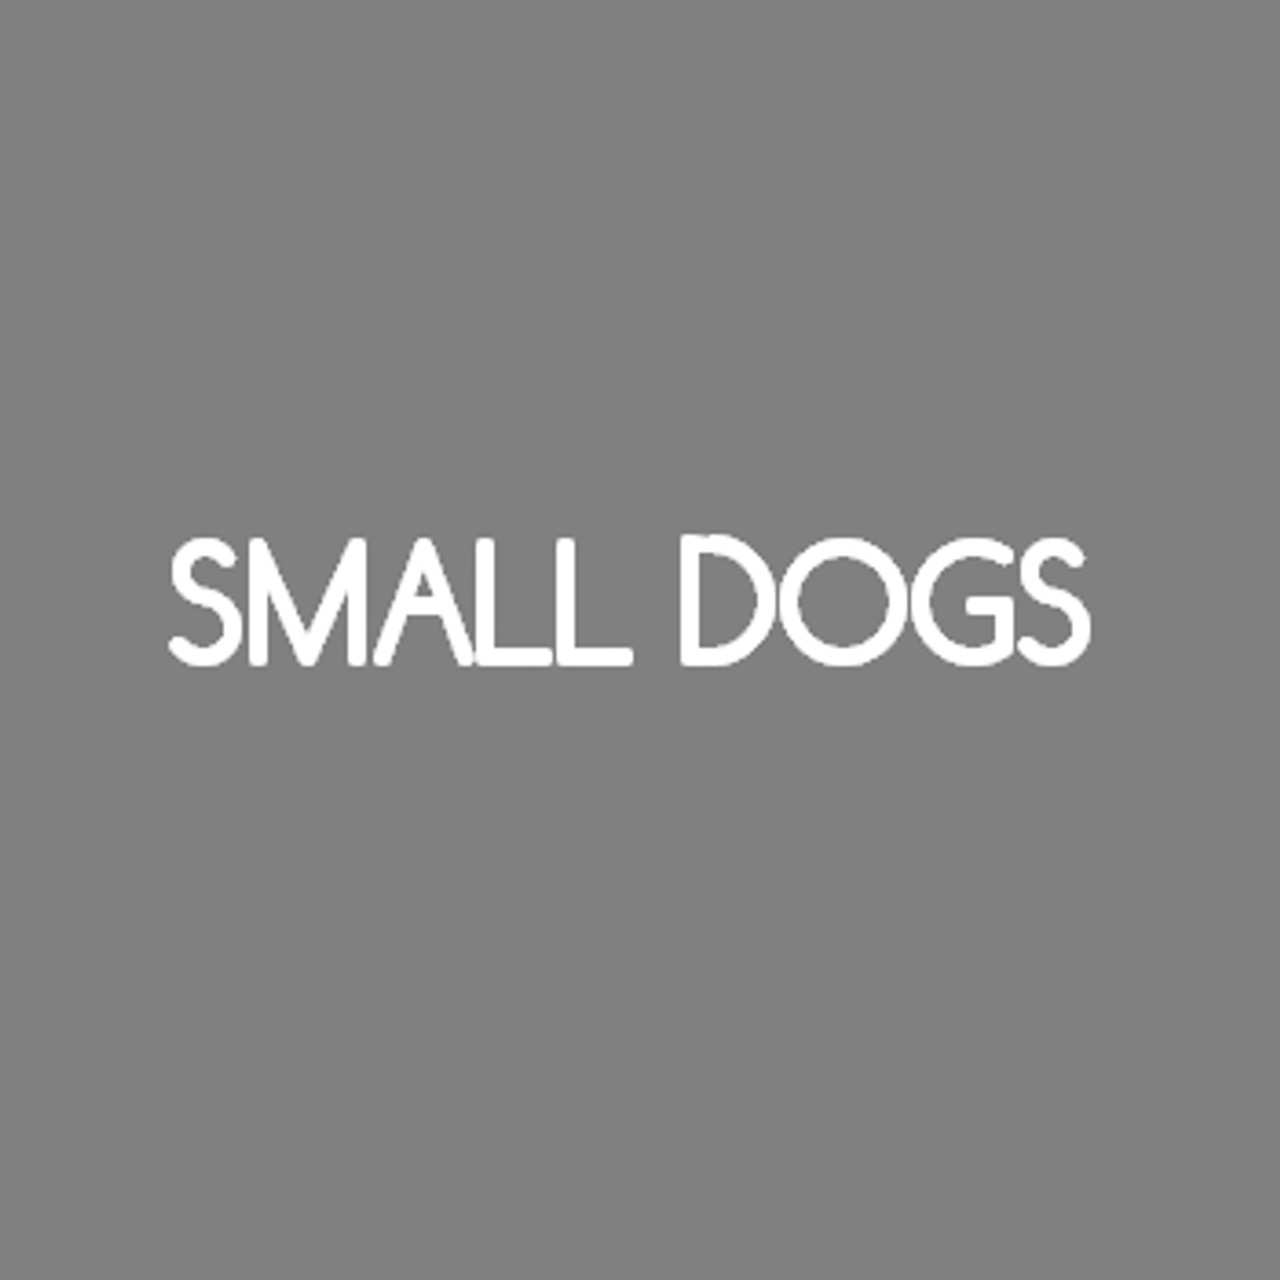 For small dogs